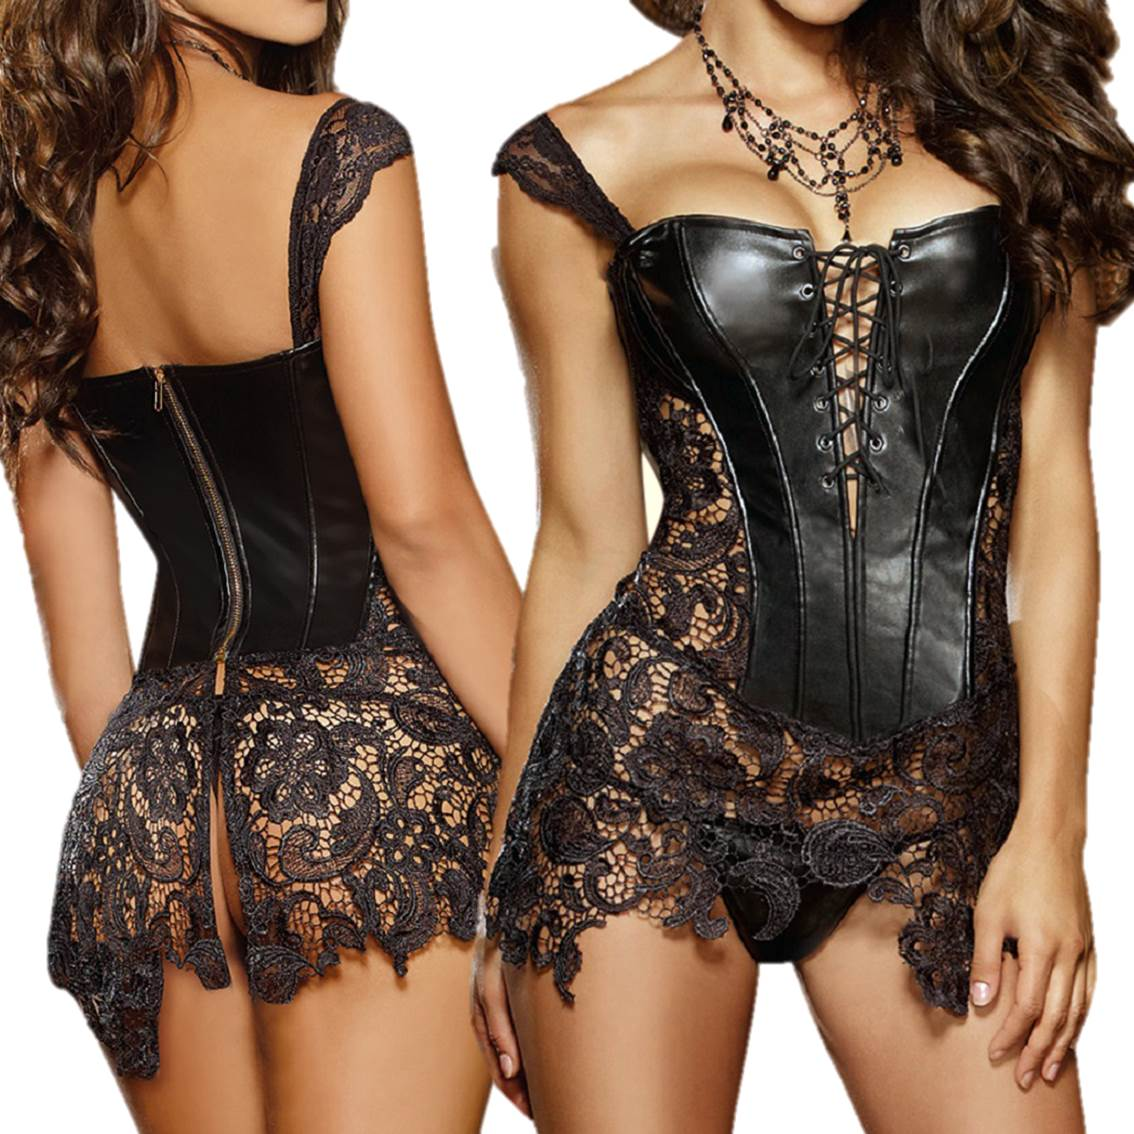 Shop our collection of steel boned corsets, waist trainers, shapewear and corset liners. Perfect for stealthing, cosplay and waist training. Discover YOUR Hourglass! Free shipping in the USA. Talk or chat with our helpful sizing experts. Authentic satin, cotton, mesh & leather waist trainer corsets.